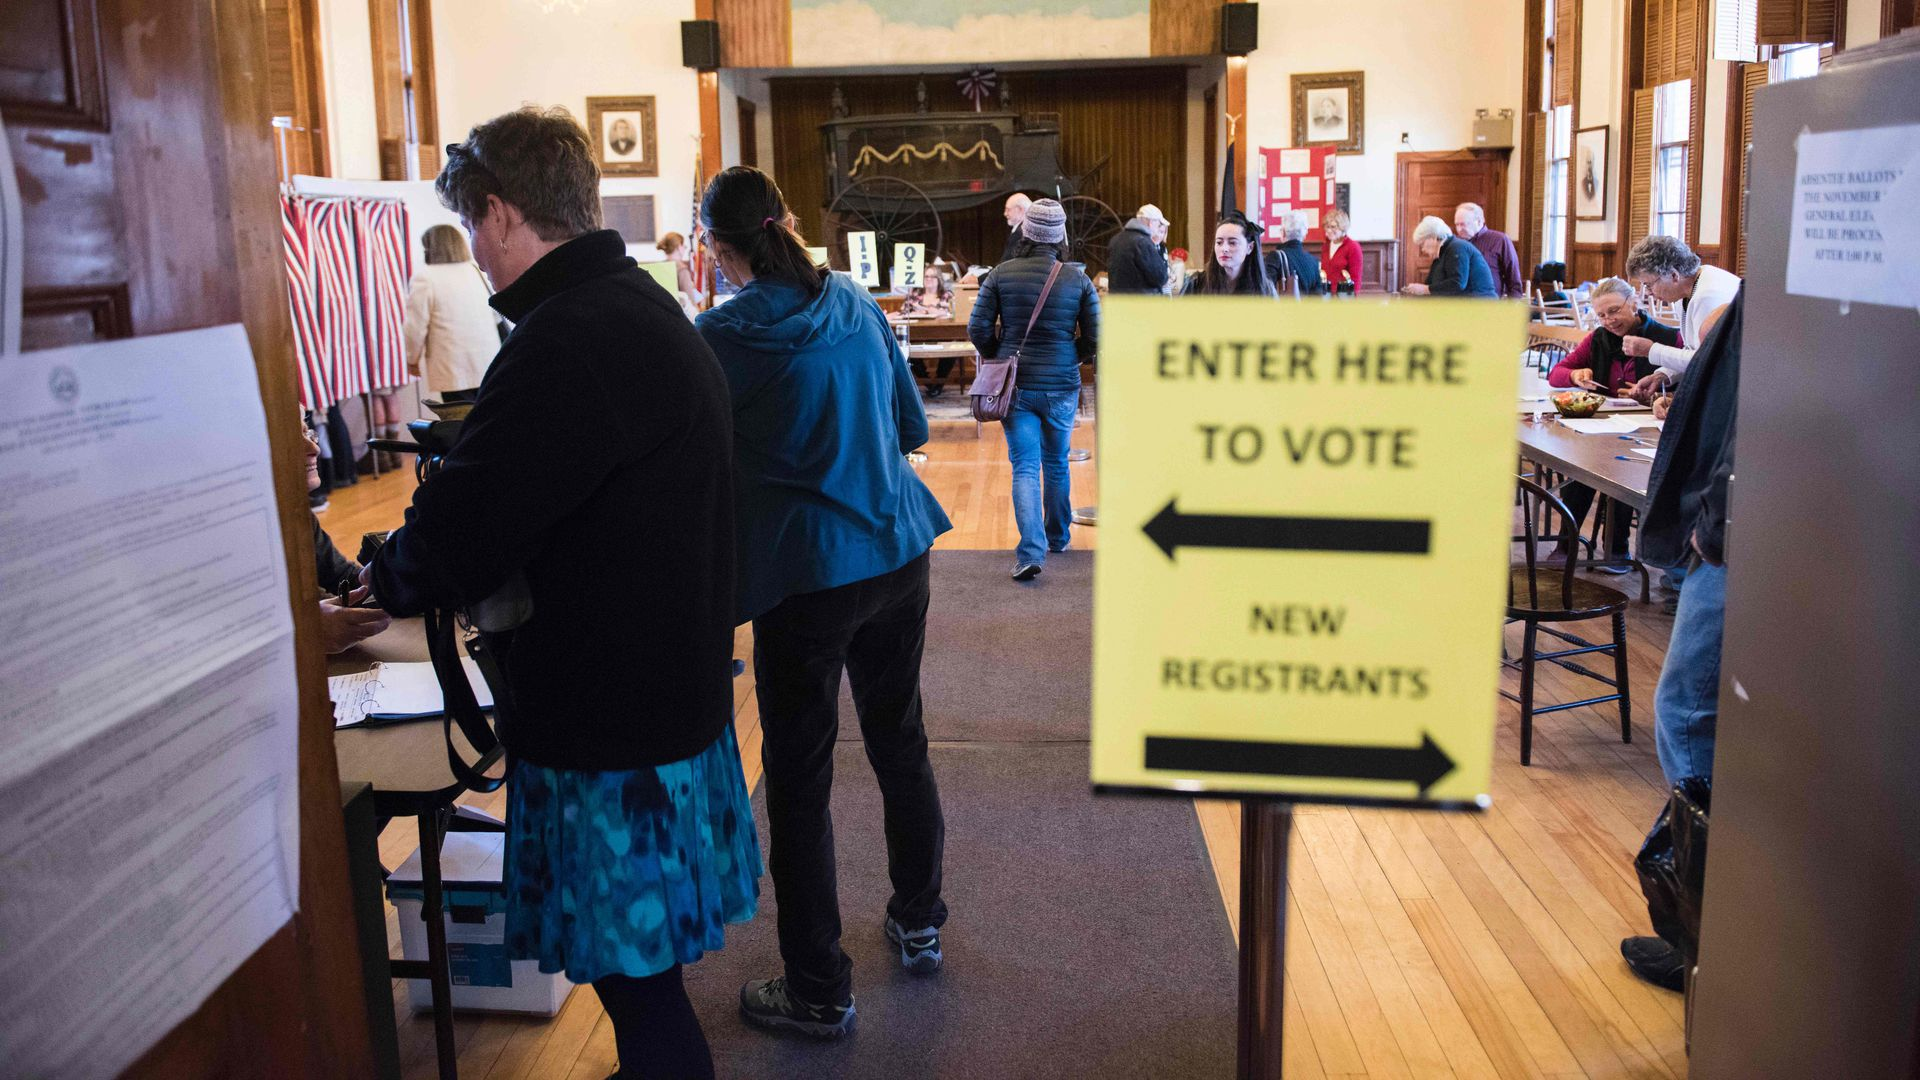 Voters cast their ballots in Sutton, New Hampshire. Photo: Ryan McBride/AFP/Getty Images